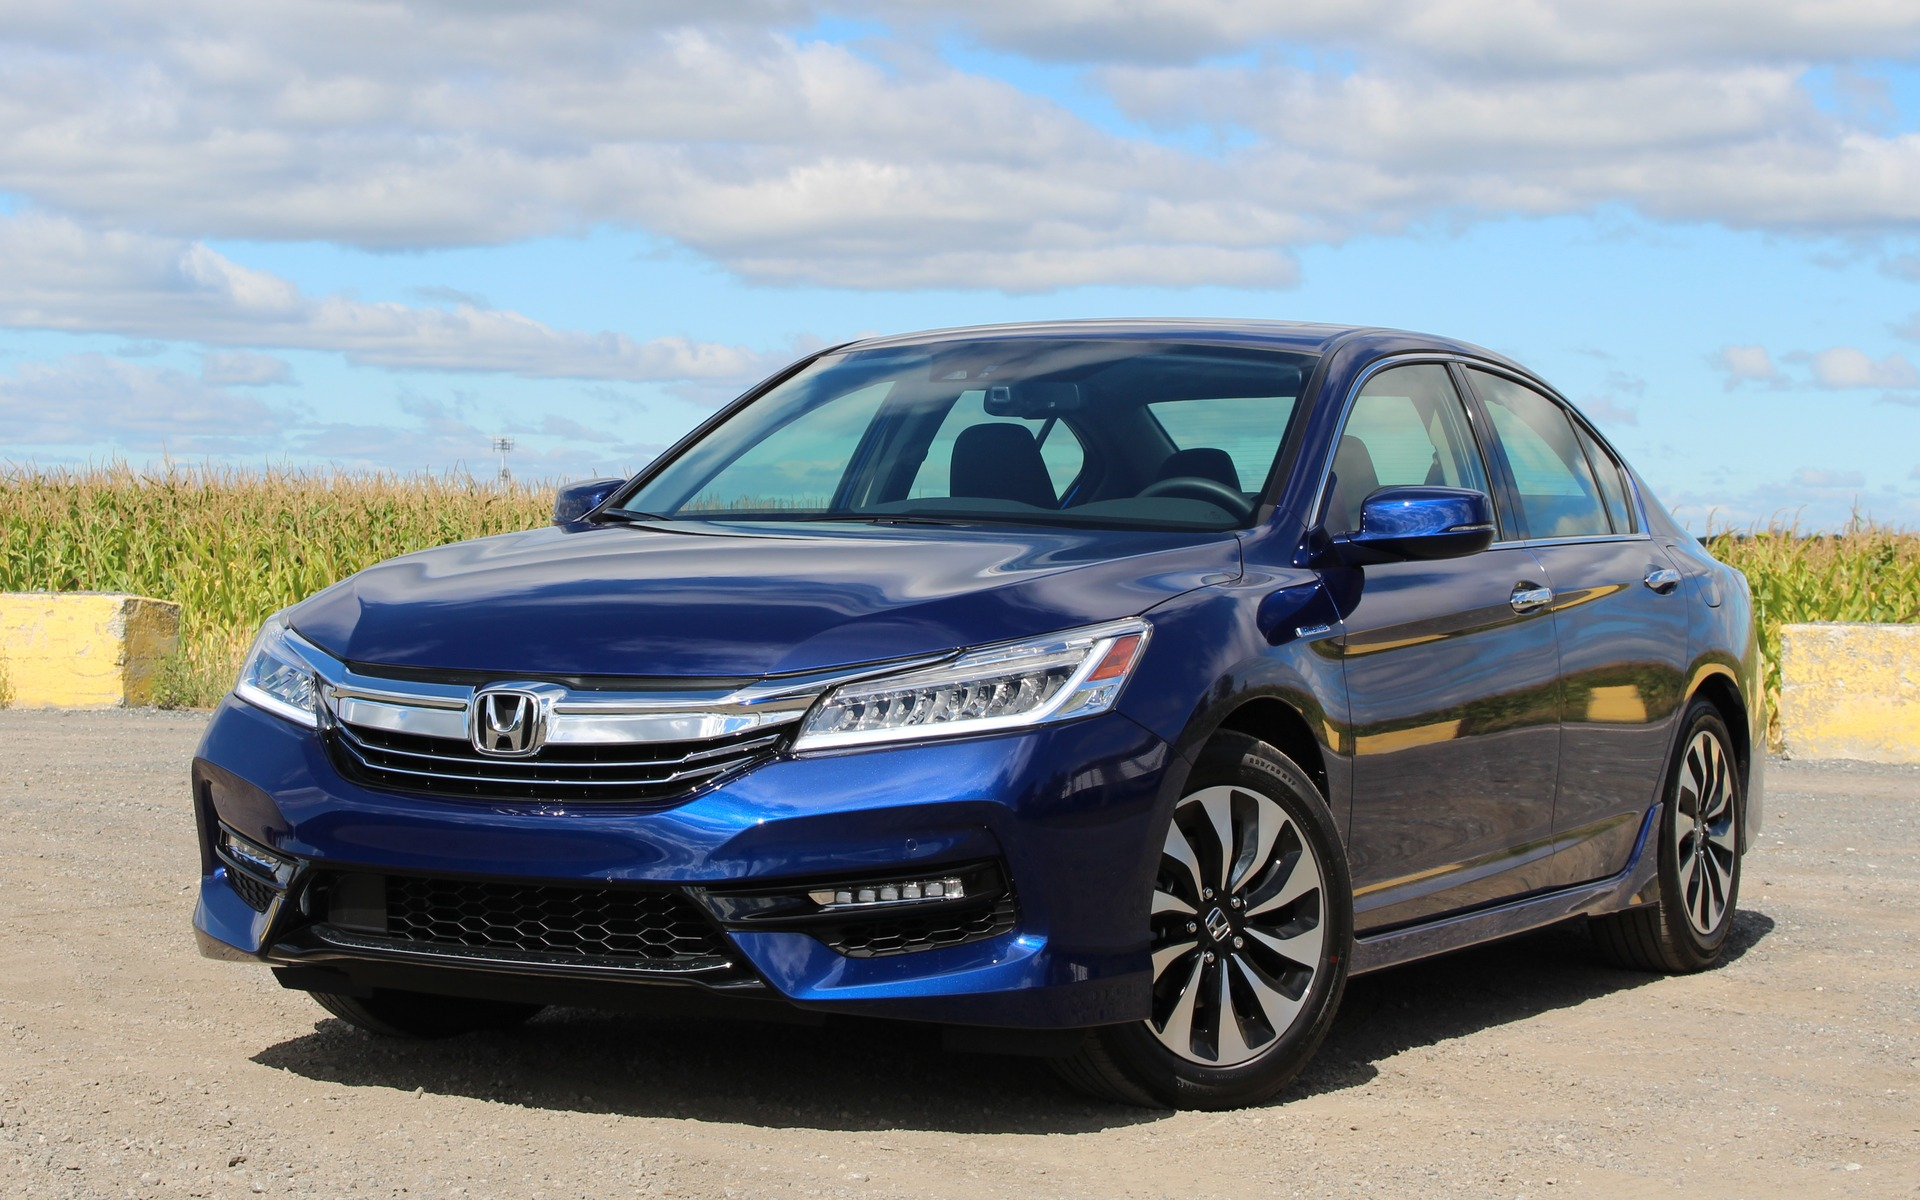 Top 10 Best-selling Cars in Canada, First Half of 2017 - 1/10